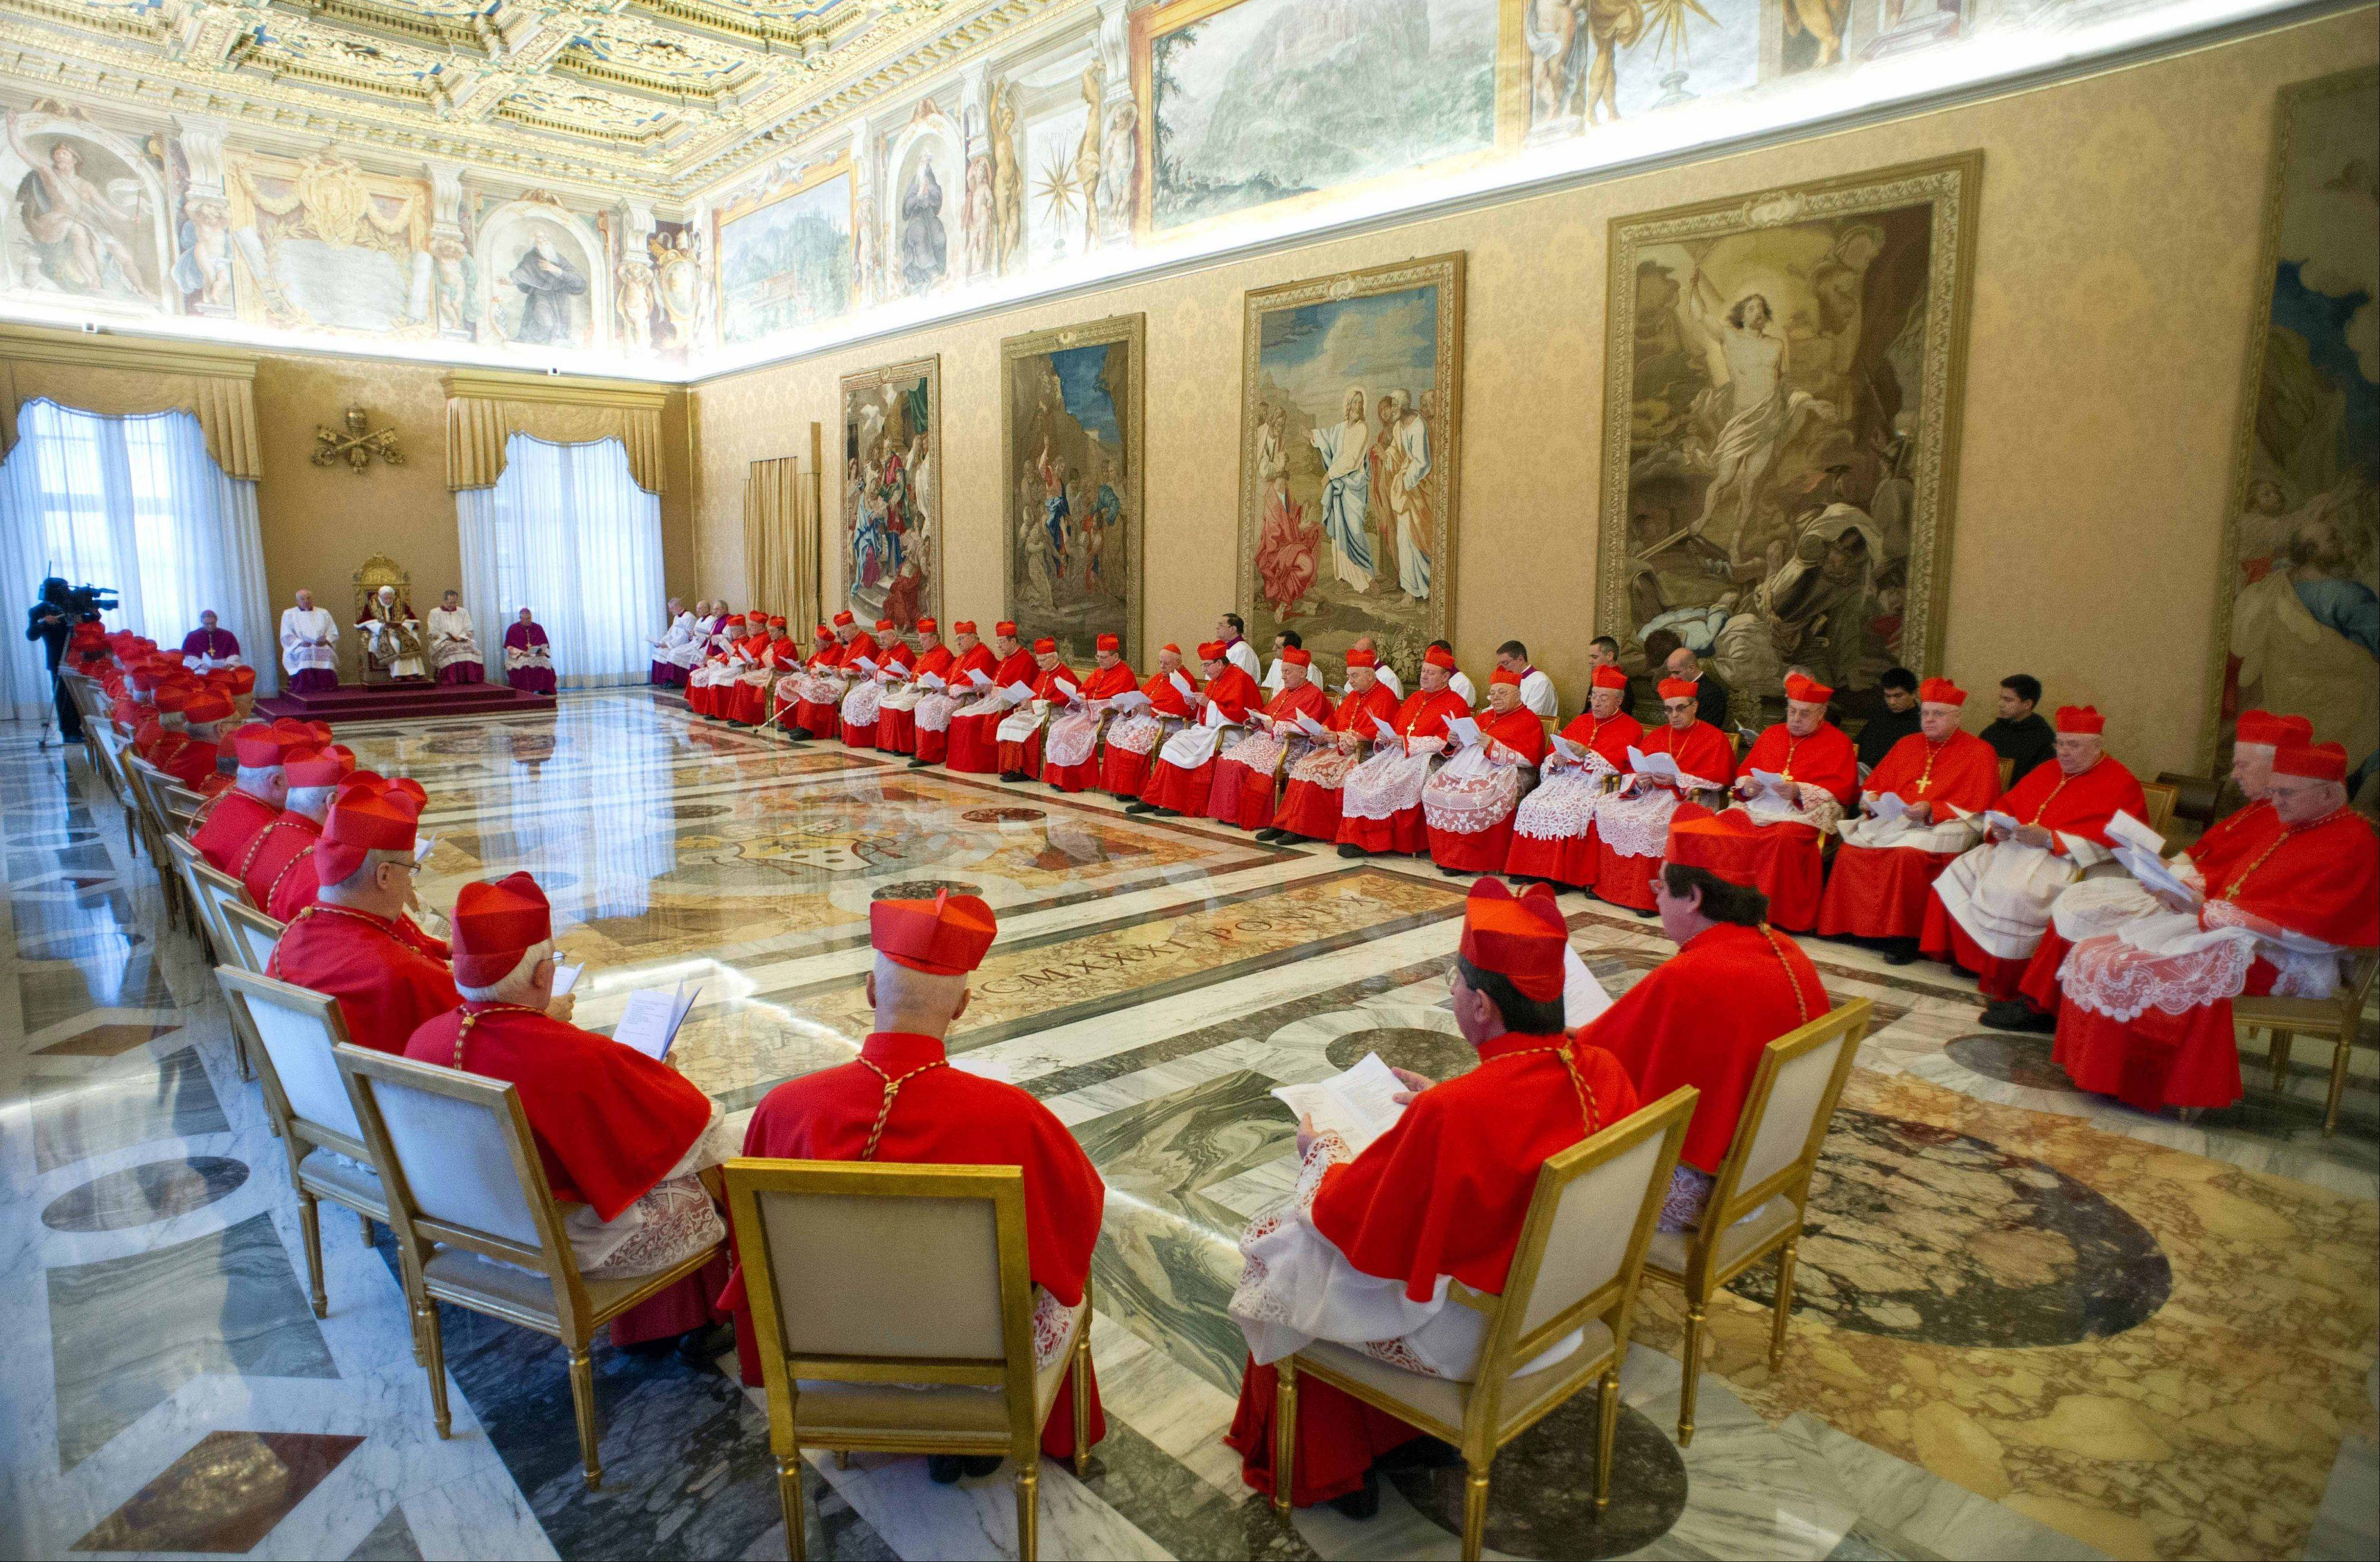 Pope Benedict XVI, sitting on the throne at left, attends a meeting of Vatican cardinals at the Vatican.